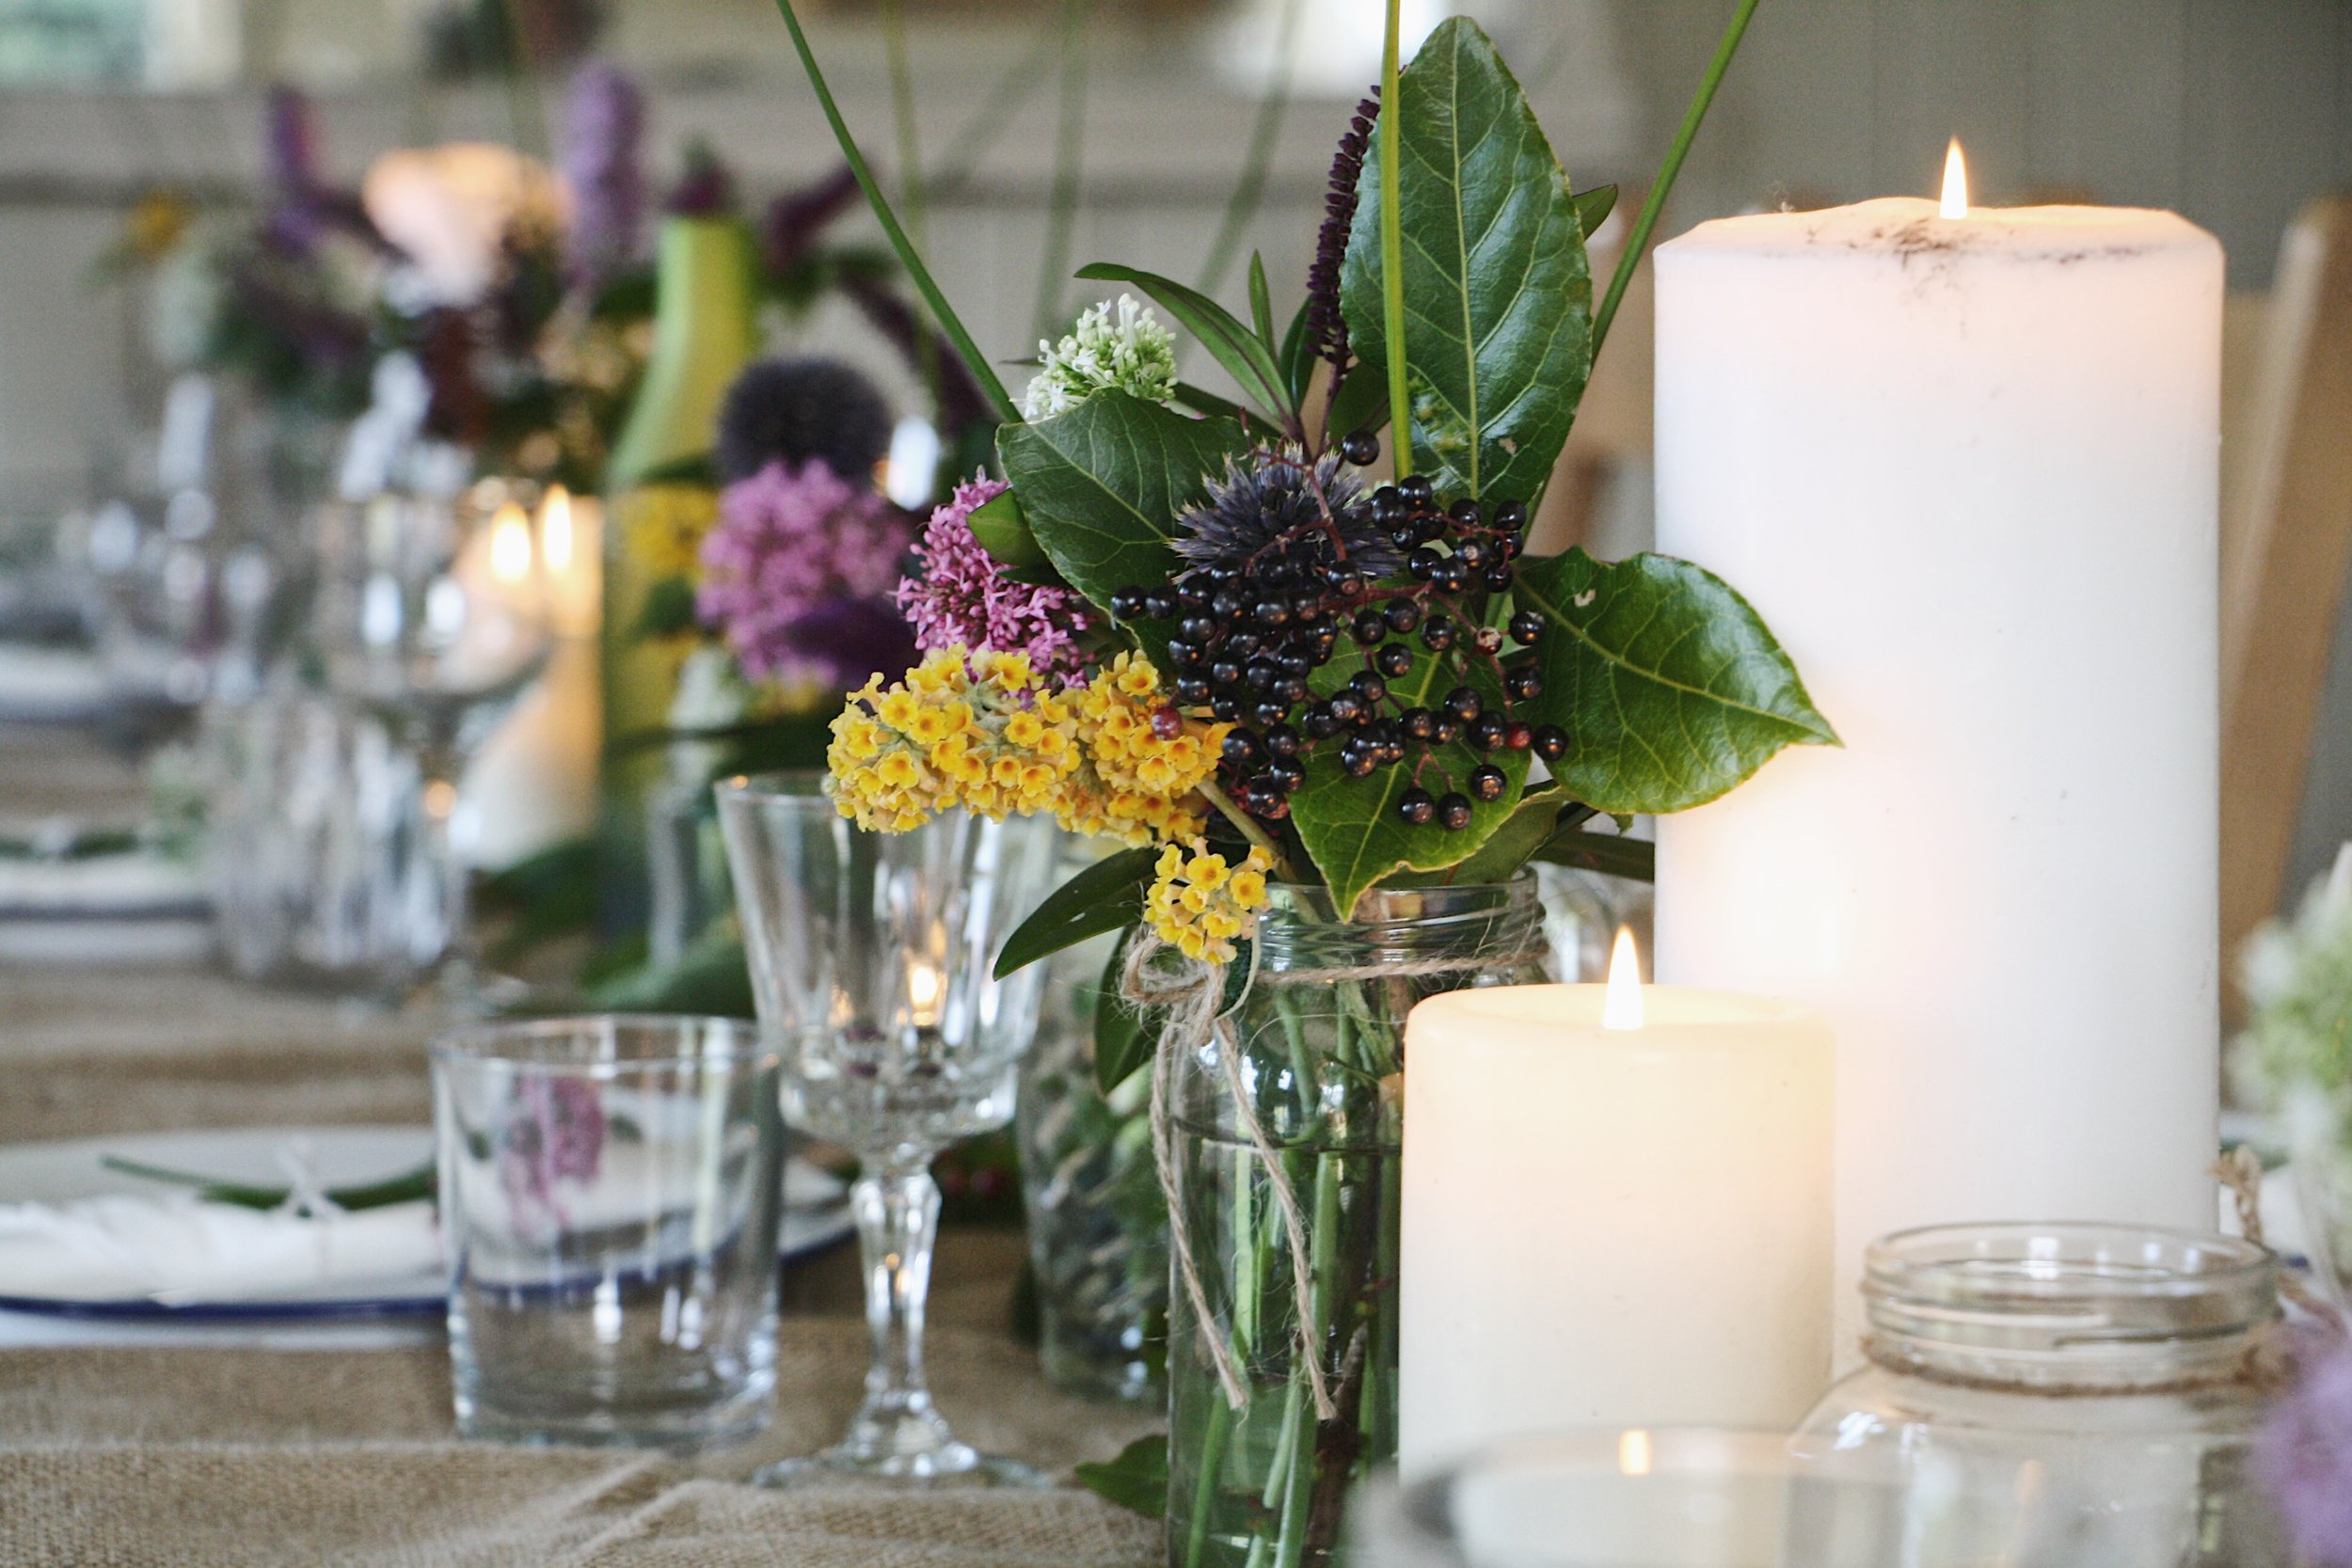 forage & feast event with fore adventure in dorset